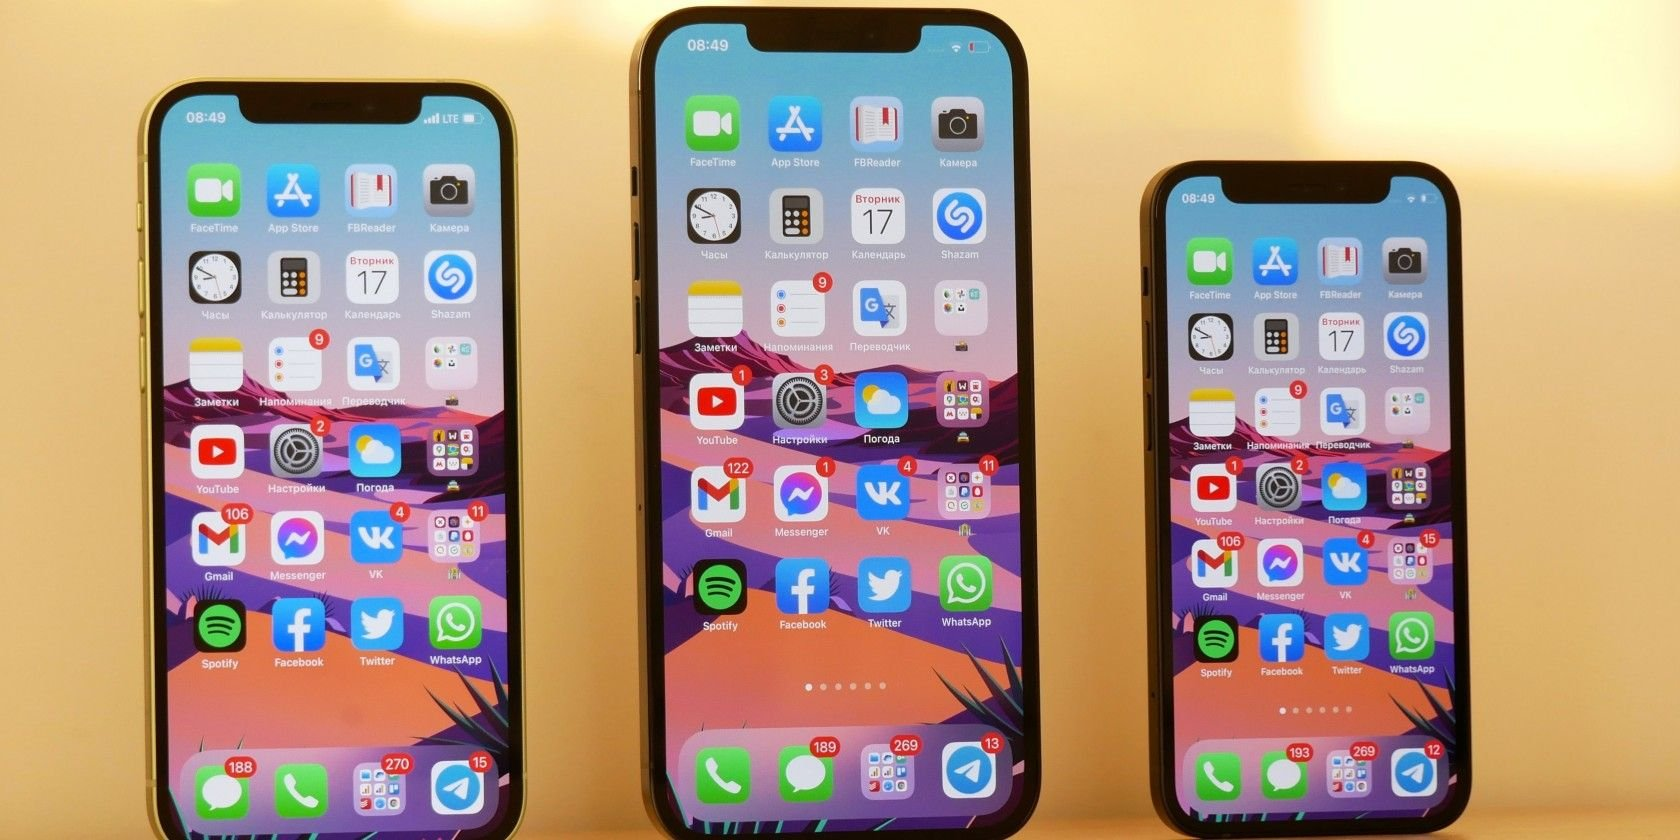 Why Is Android Losing So Many Users to iPhone?